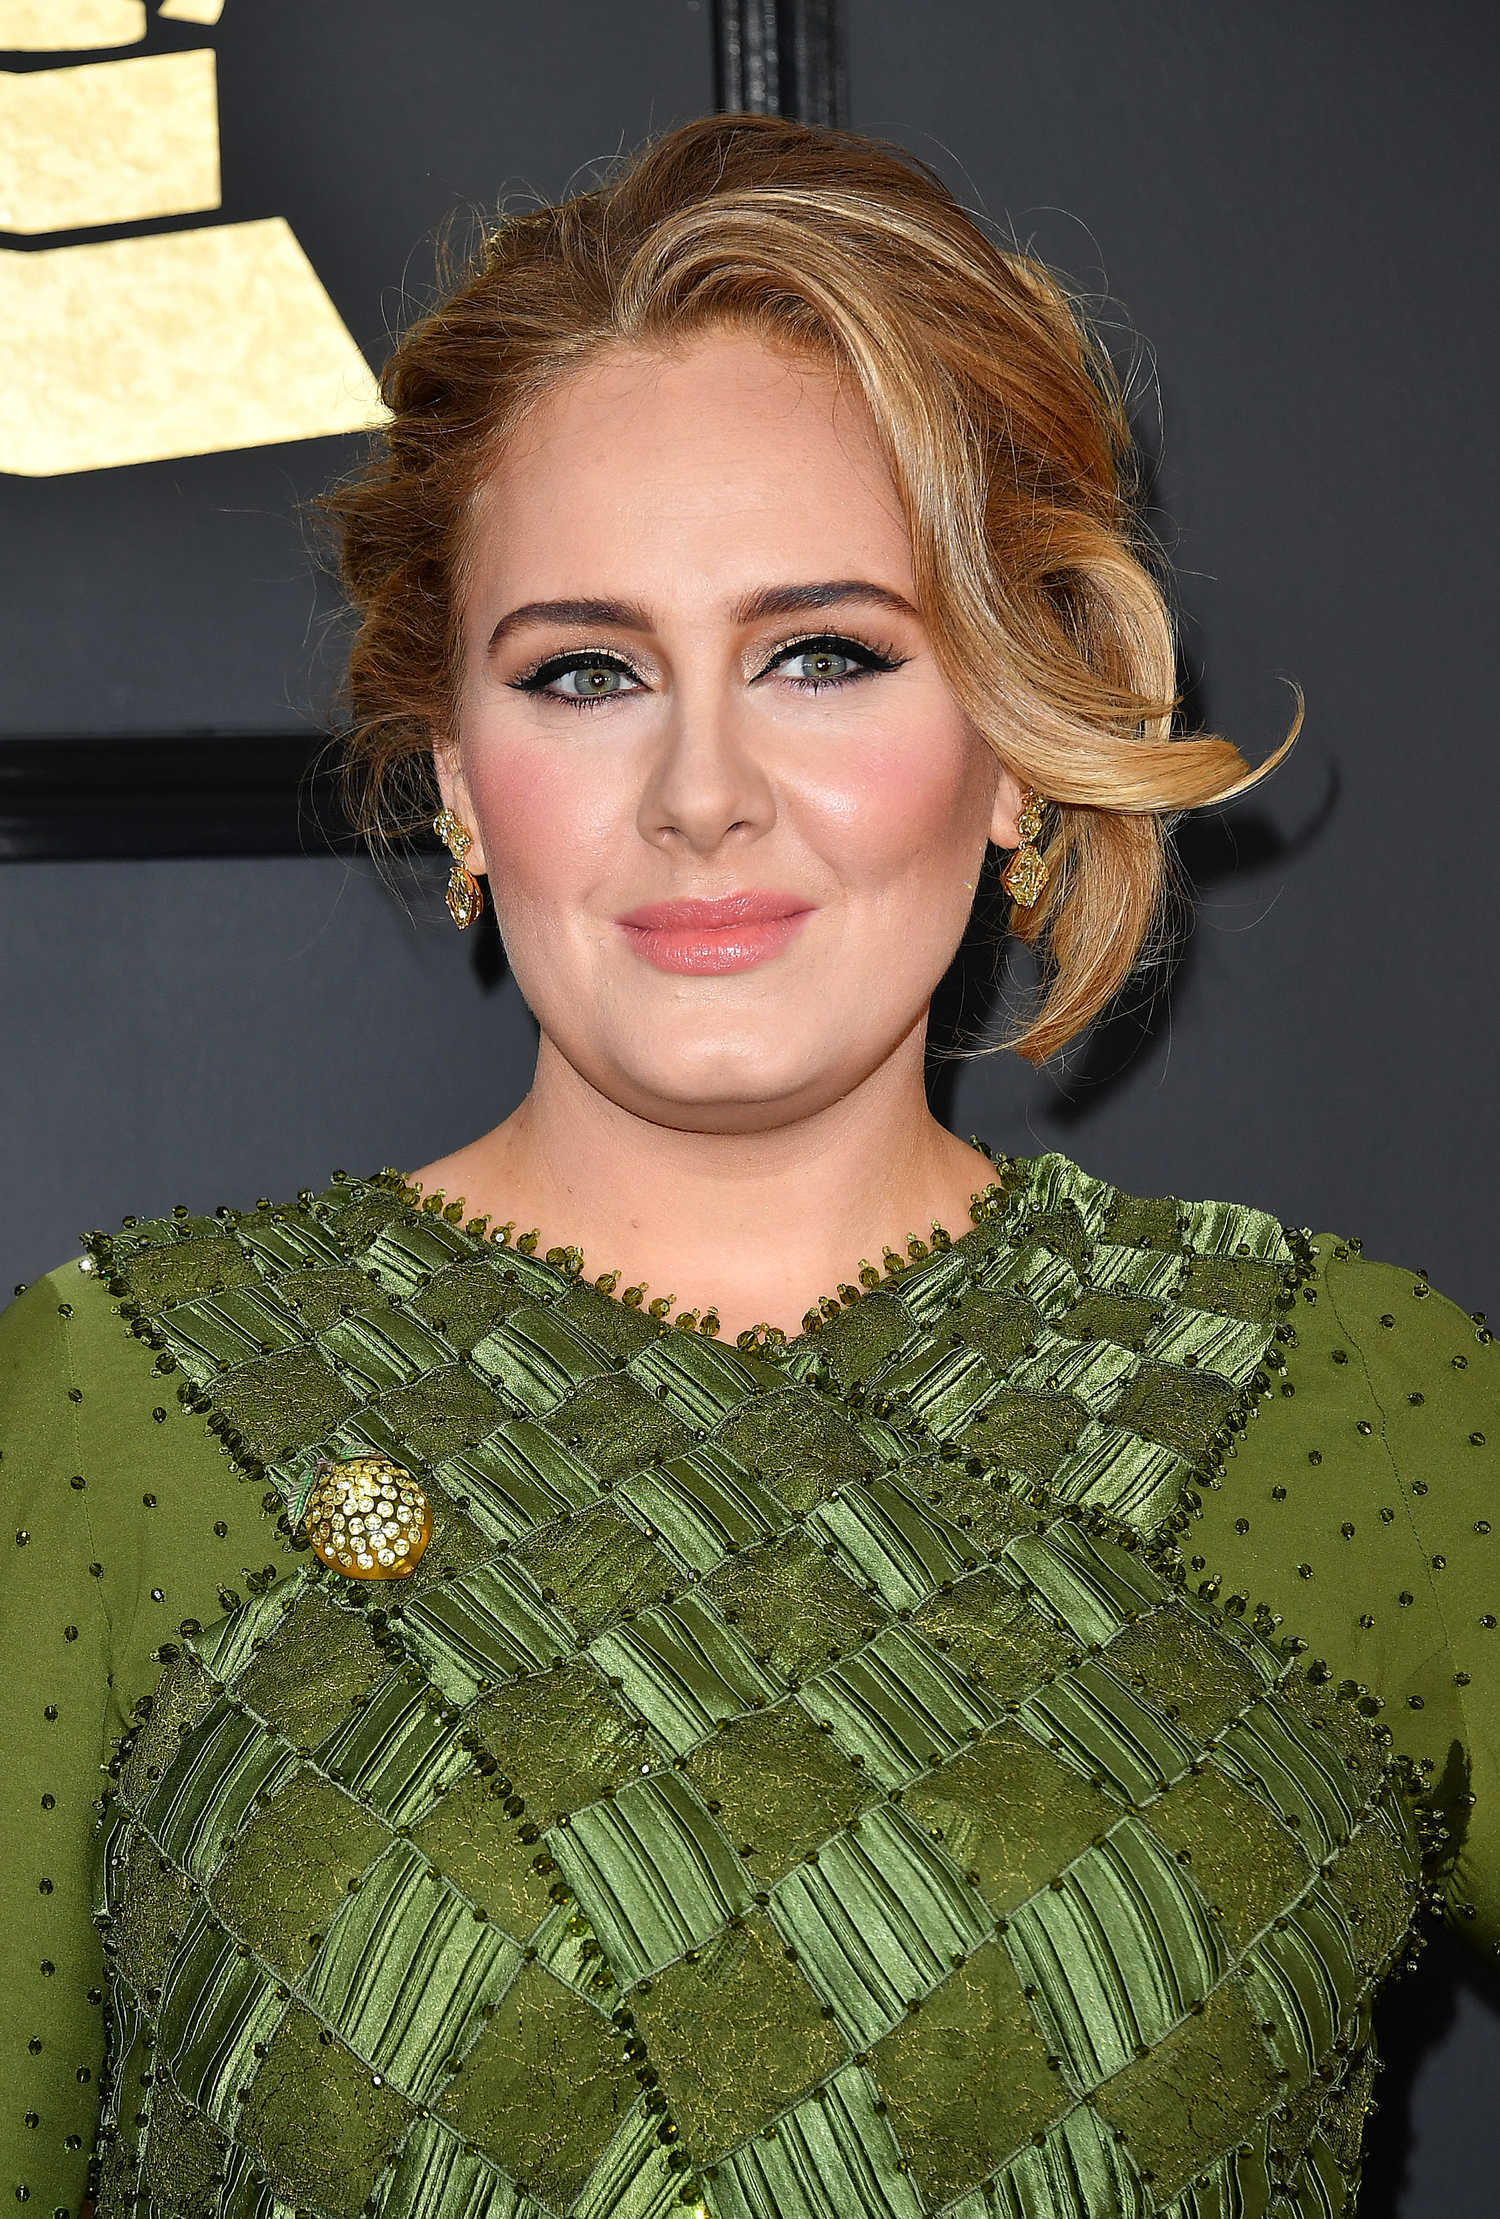 Adele at the 59th Grammy Awards in Los Angeles – Celeb Donut Emily Blunt